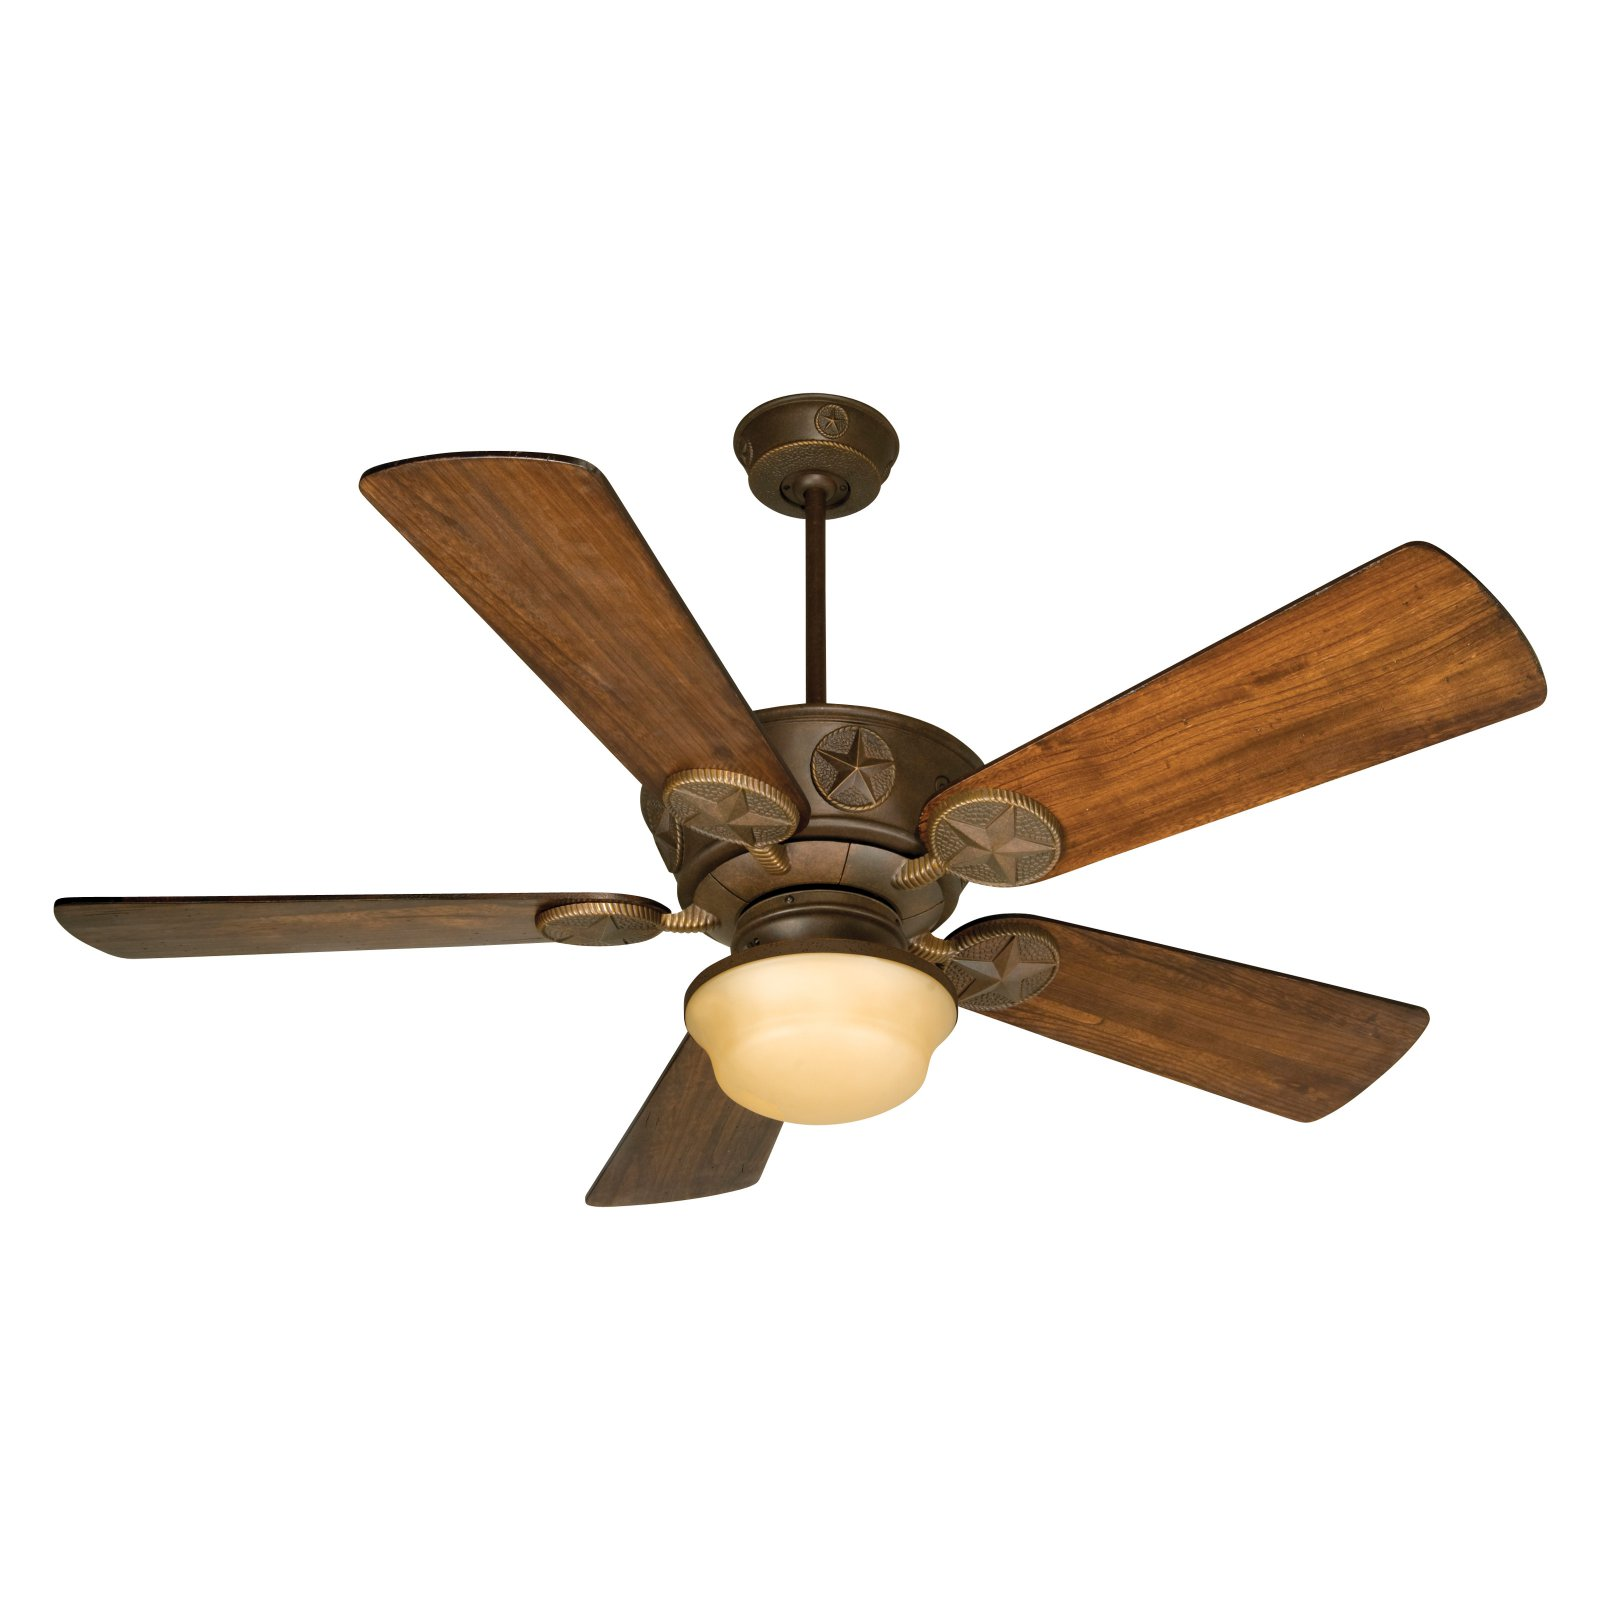 Craftmade Chaparral 54 in. Indoor/Outdoor Ceiling Fan with Light